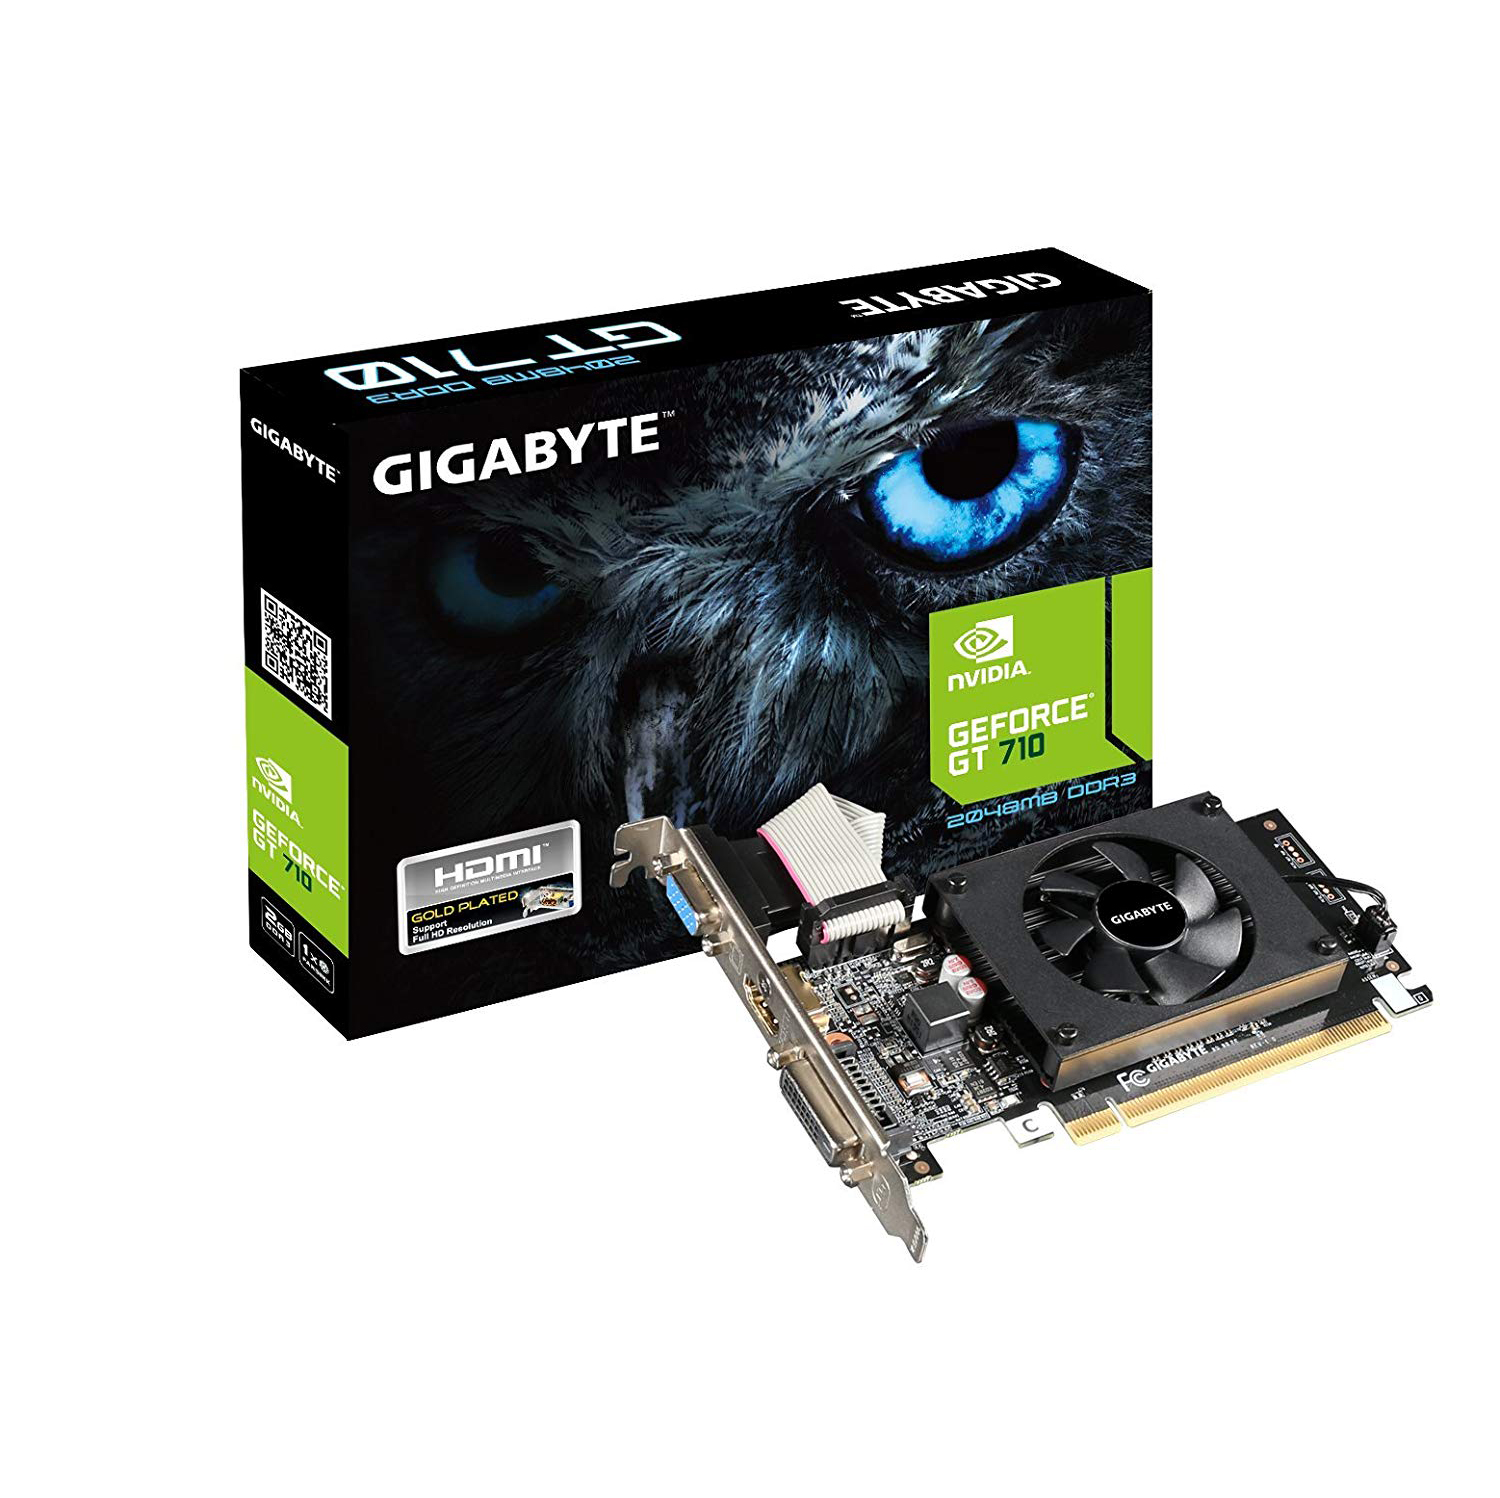 VGA GIGABYTE GT710 2GB DDR3 64BIT PCI-E 2.0 GV-GV-N710D5-2GL ,Desktop Graphic Card